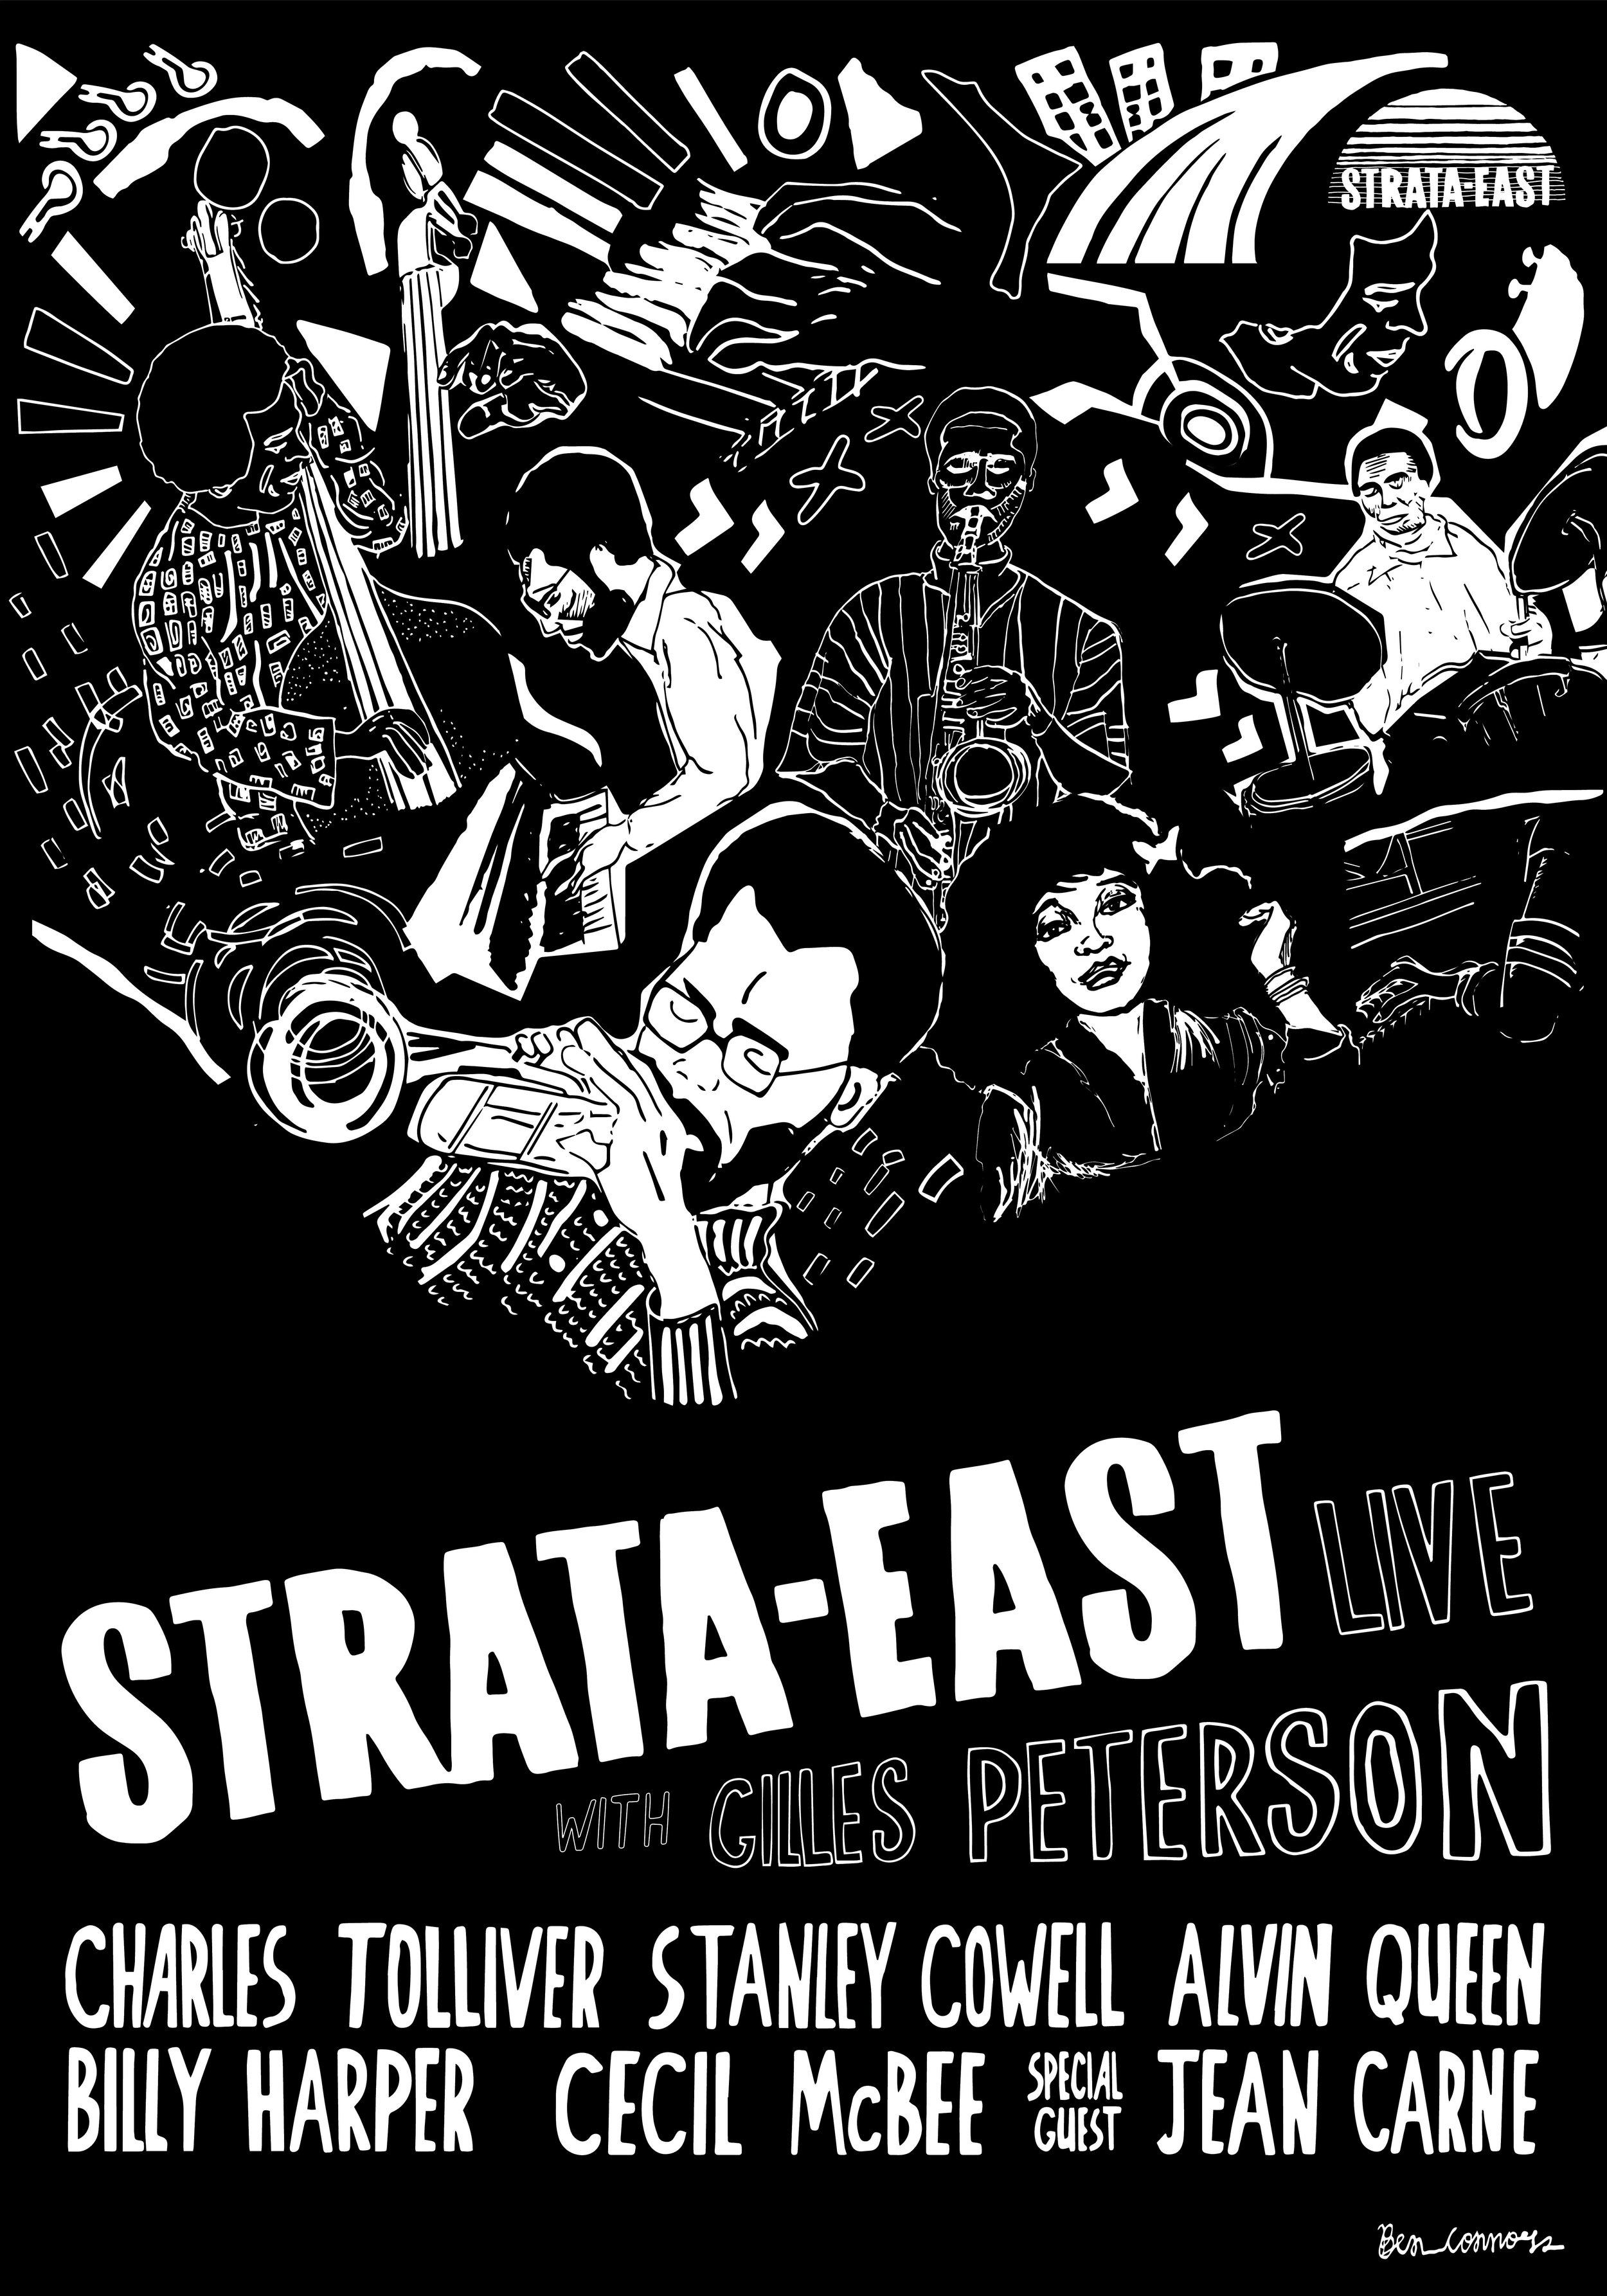 Strata+East+Poster+2.jpg?format=2500w